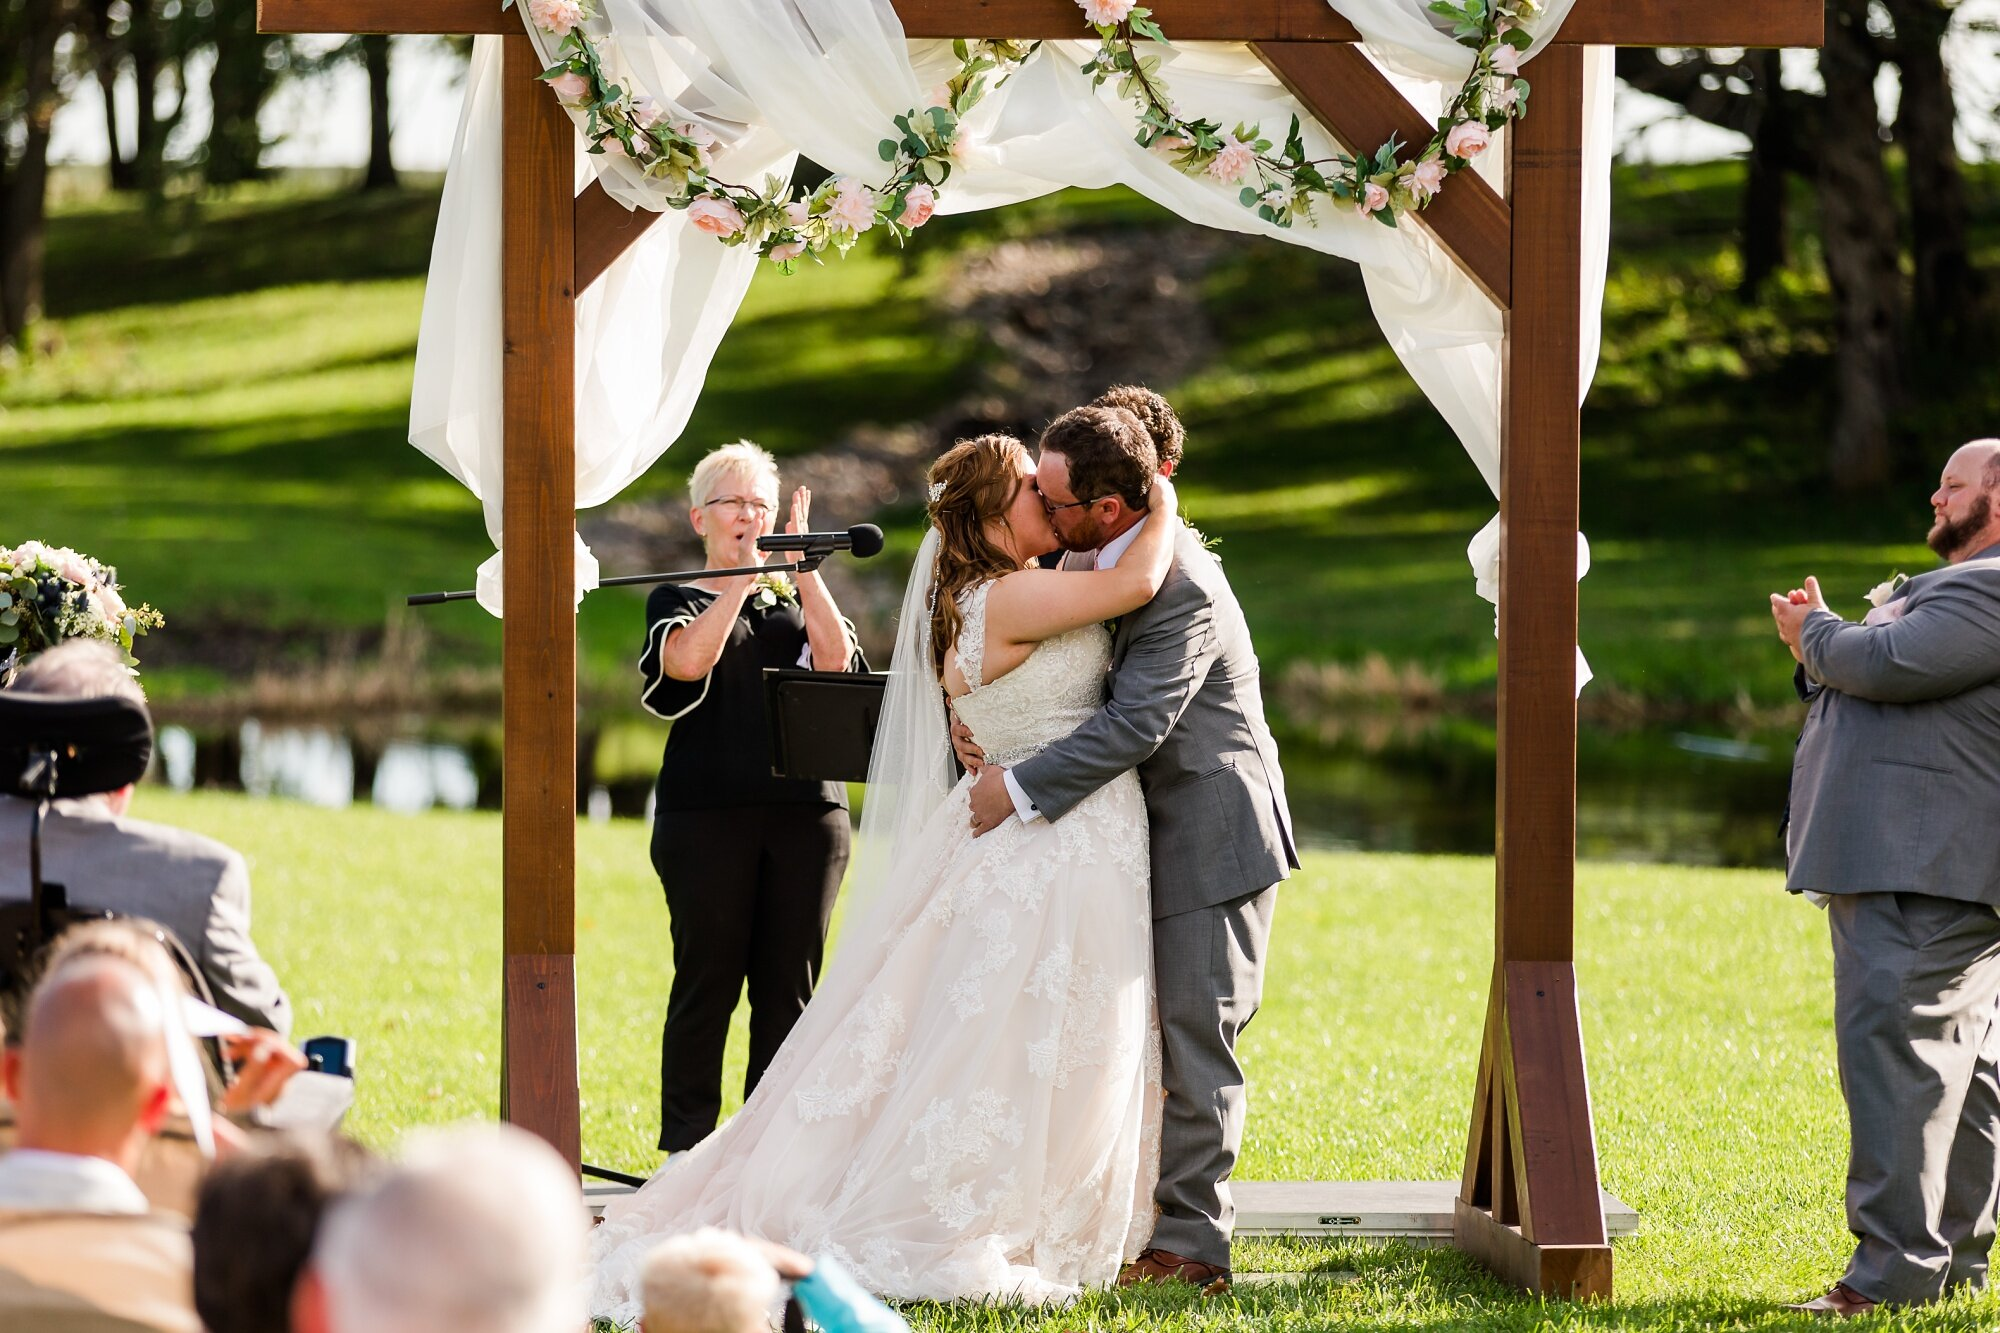 Amber Langerud Photography_Lake Park Minnesota, Outdoor Barn Wedding With Horses_6994.jpg